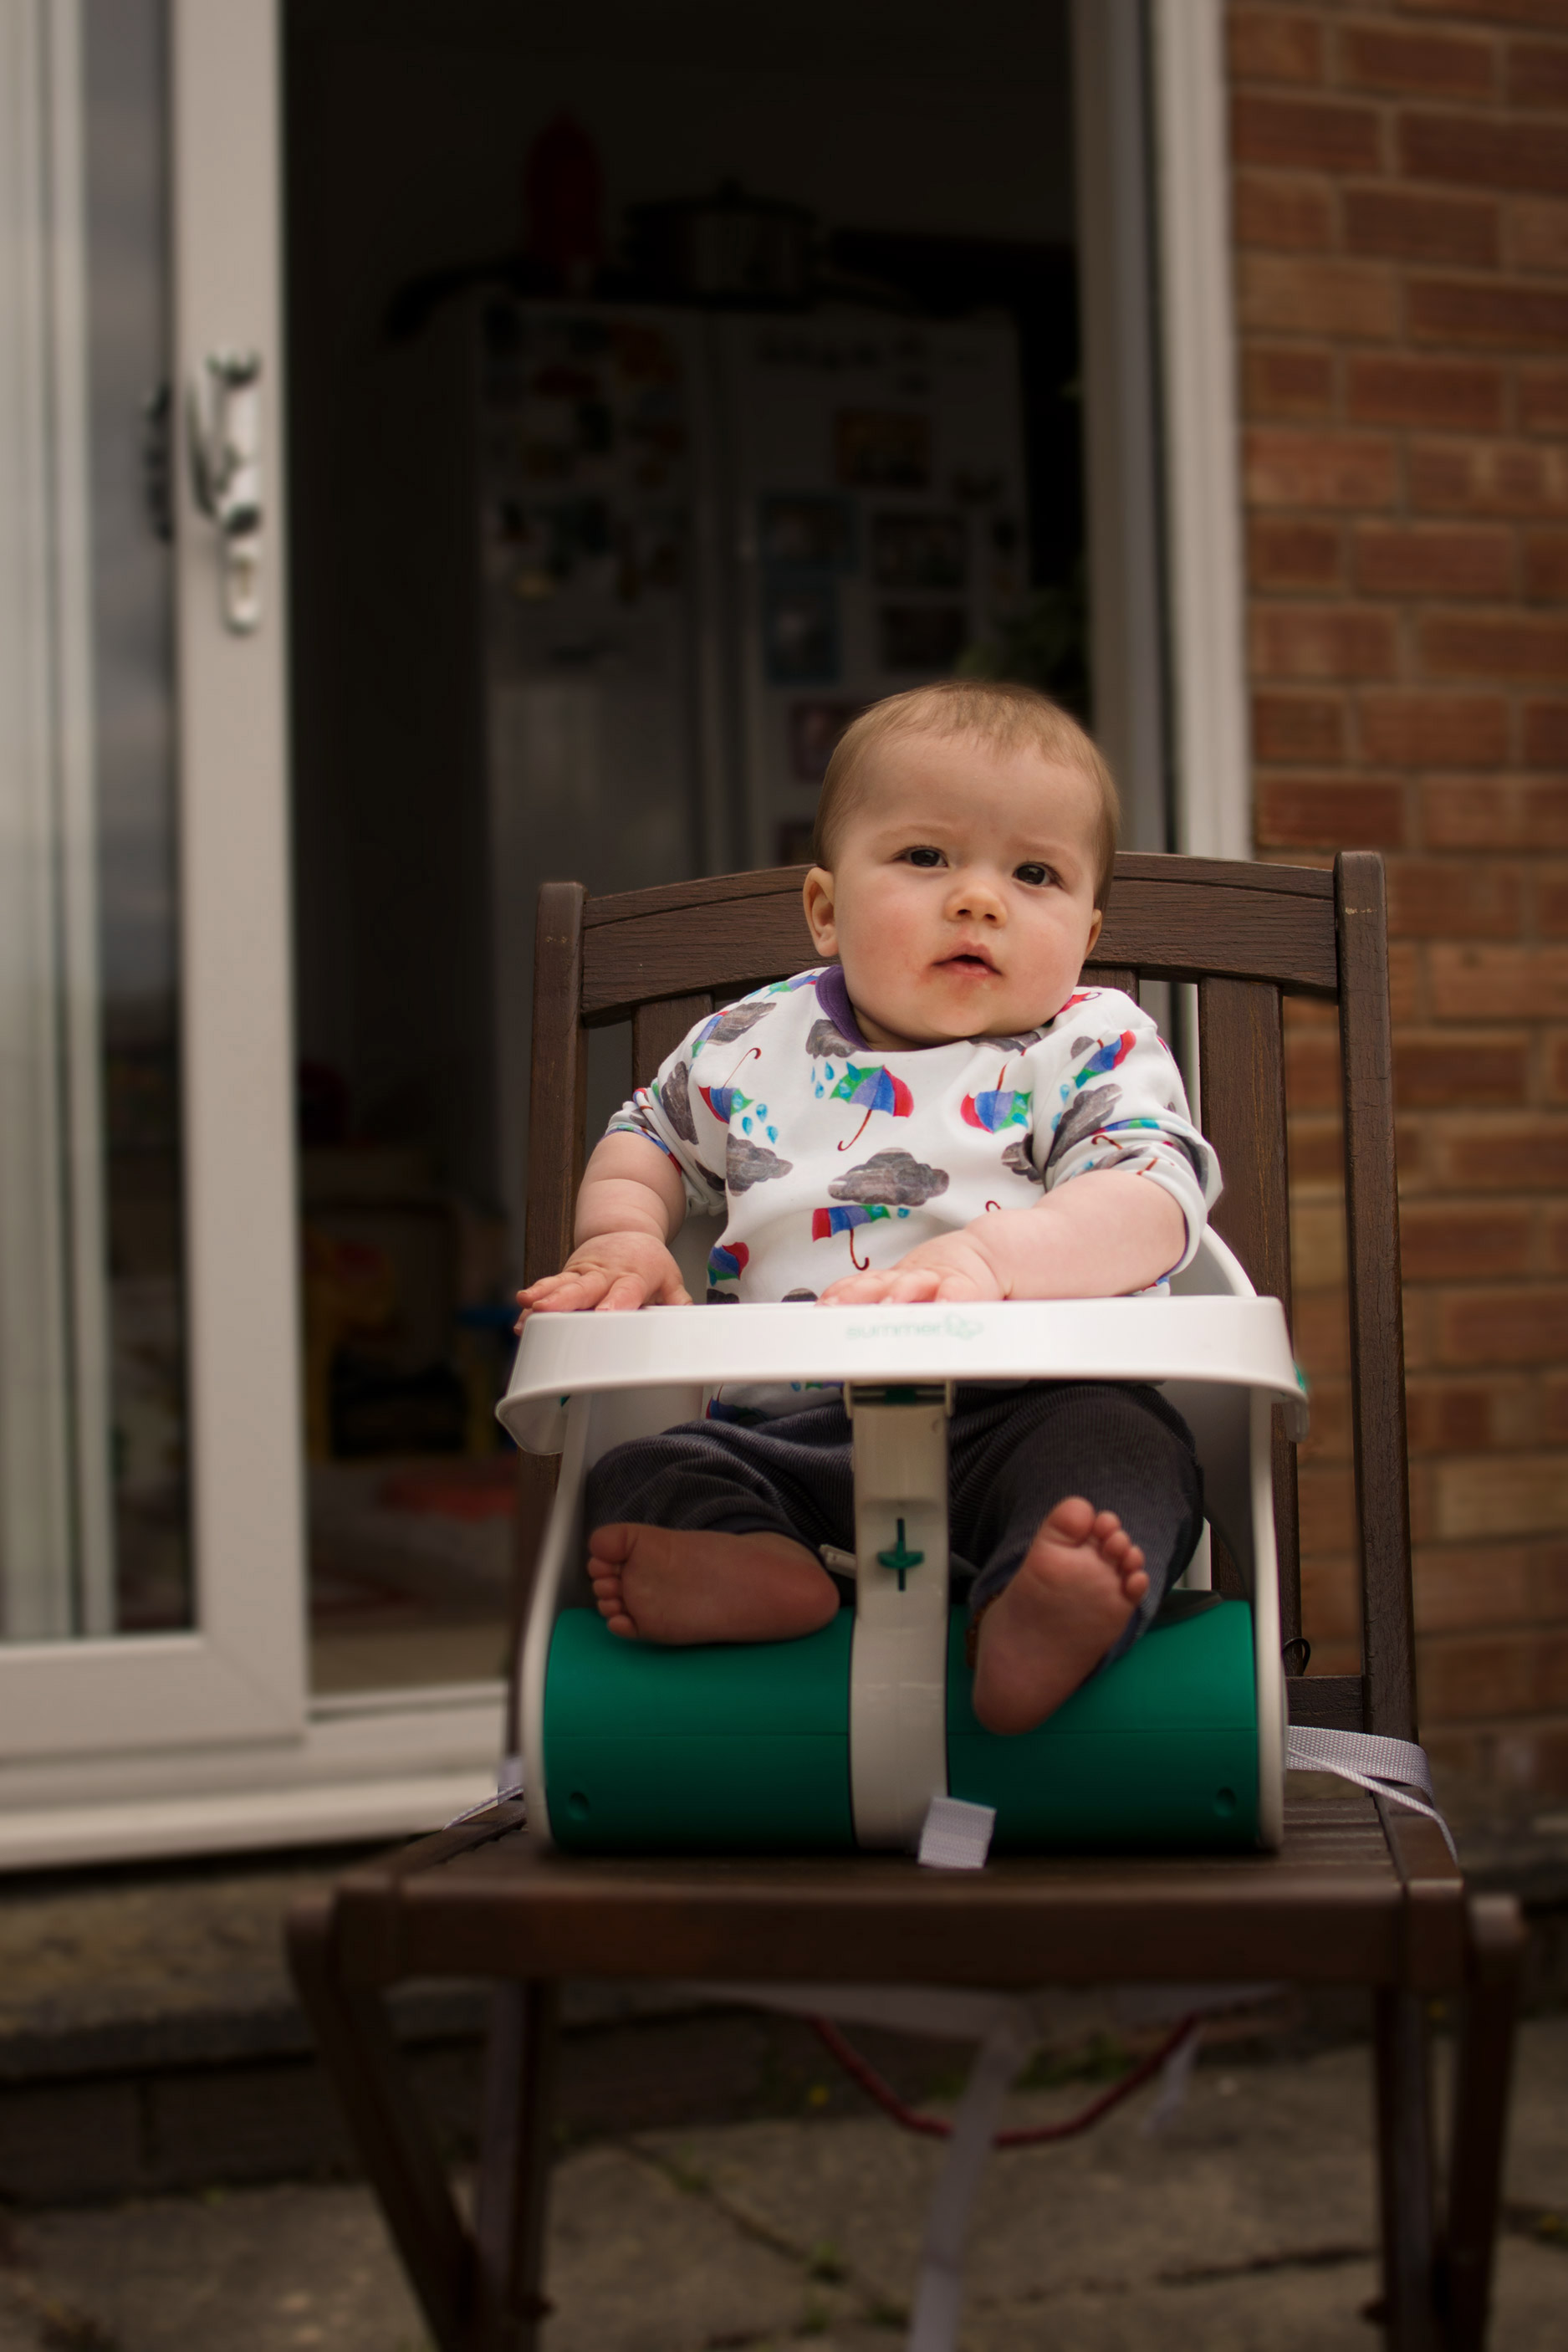 Review: Summer Travel Booster Seat - 9 month old baby boy sitting in his Summer portable highchair wearing rainy day t-shirt from the Bunting Tree in the garden